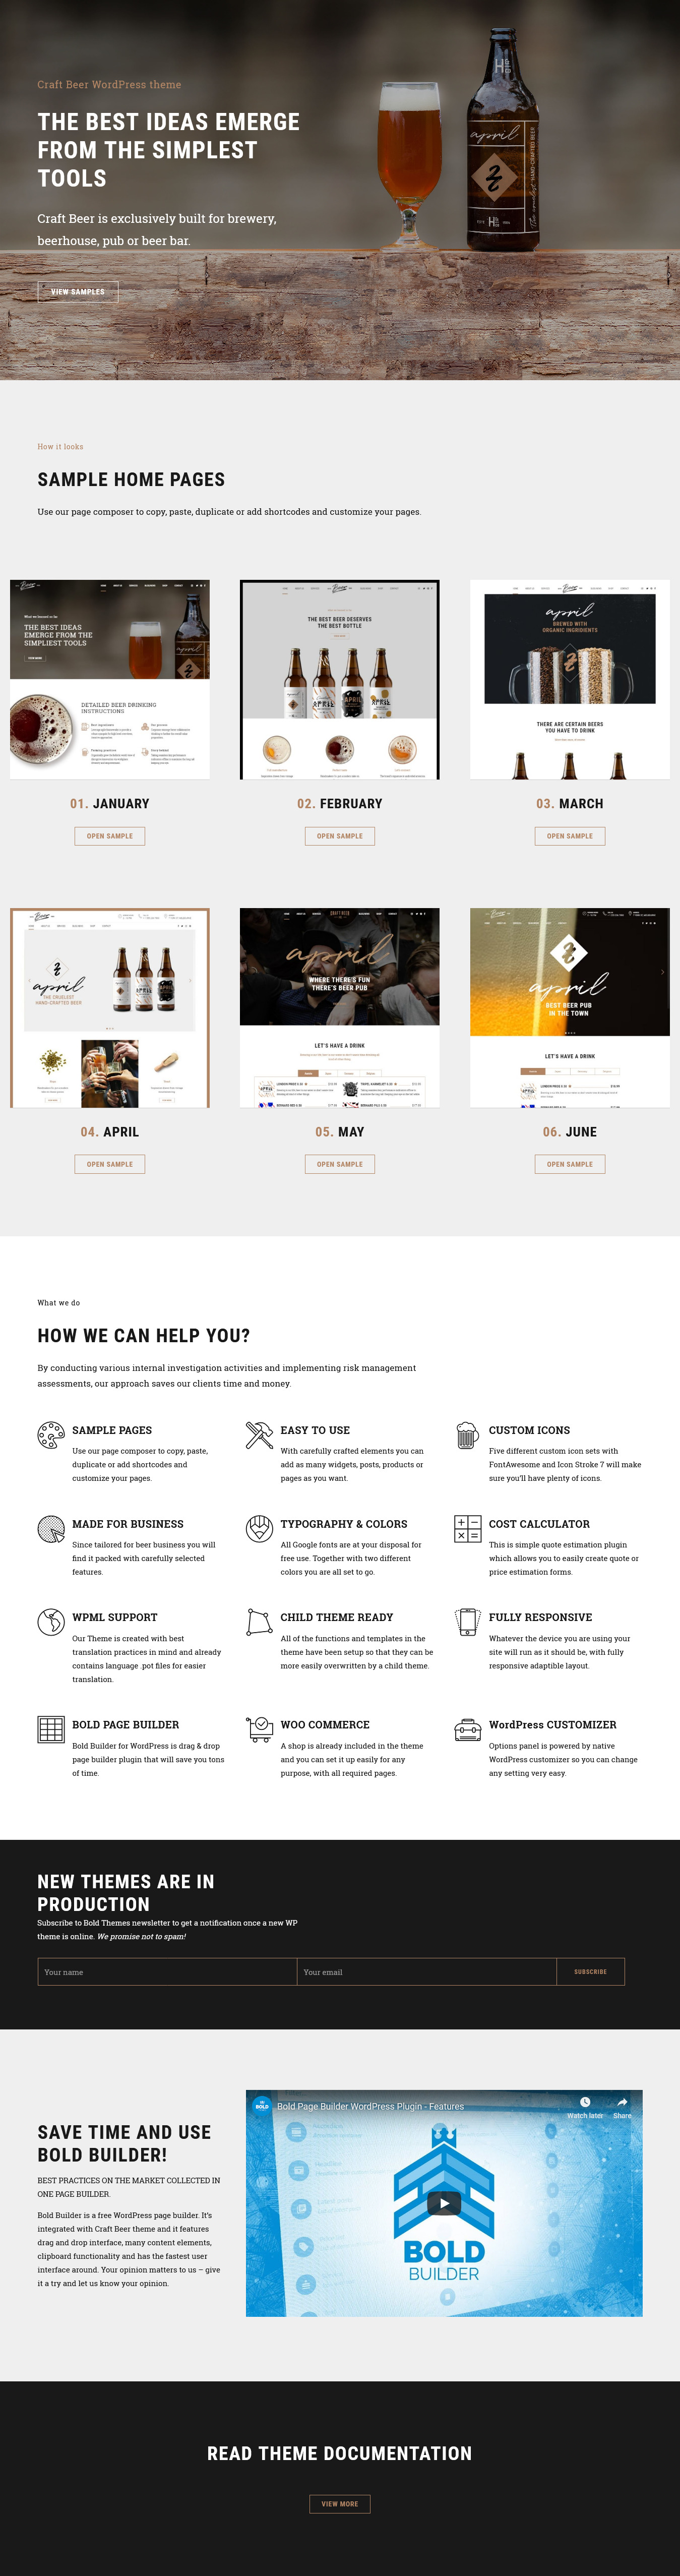 craft beer best premium bar pub wordpress theme - 10+ Best Premium Bar and Pub WordPress Themes